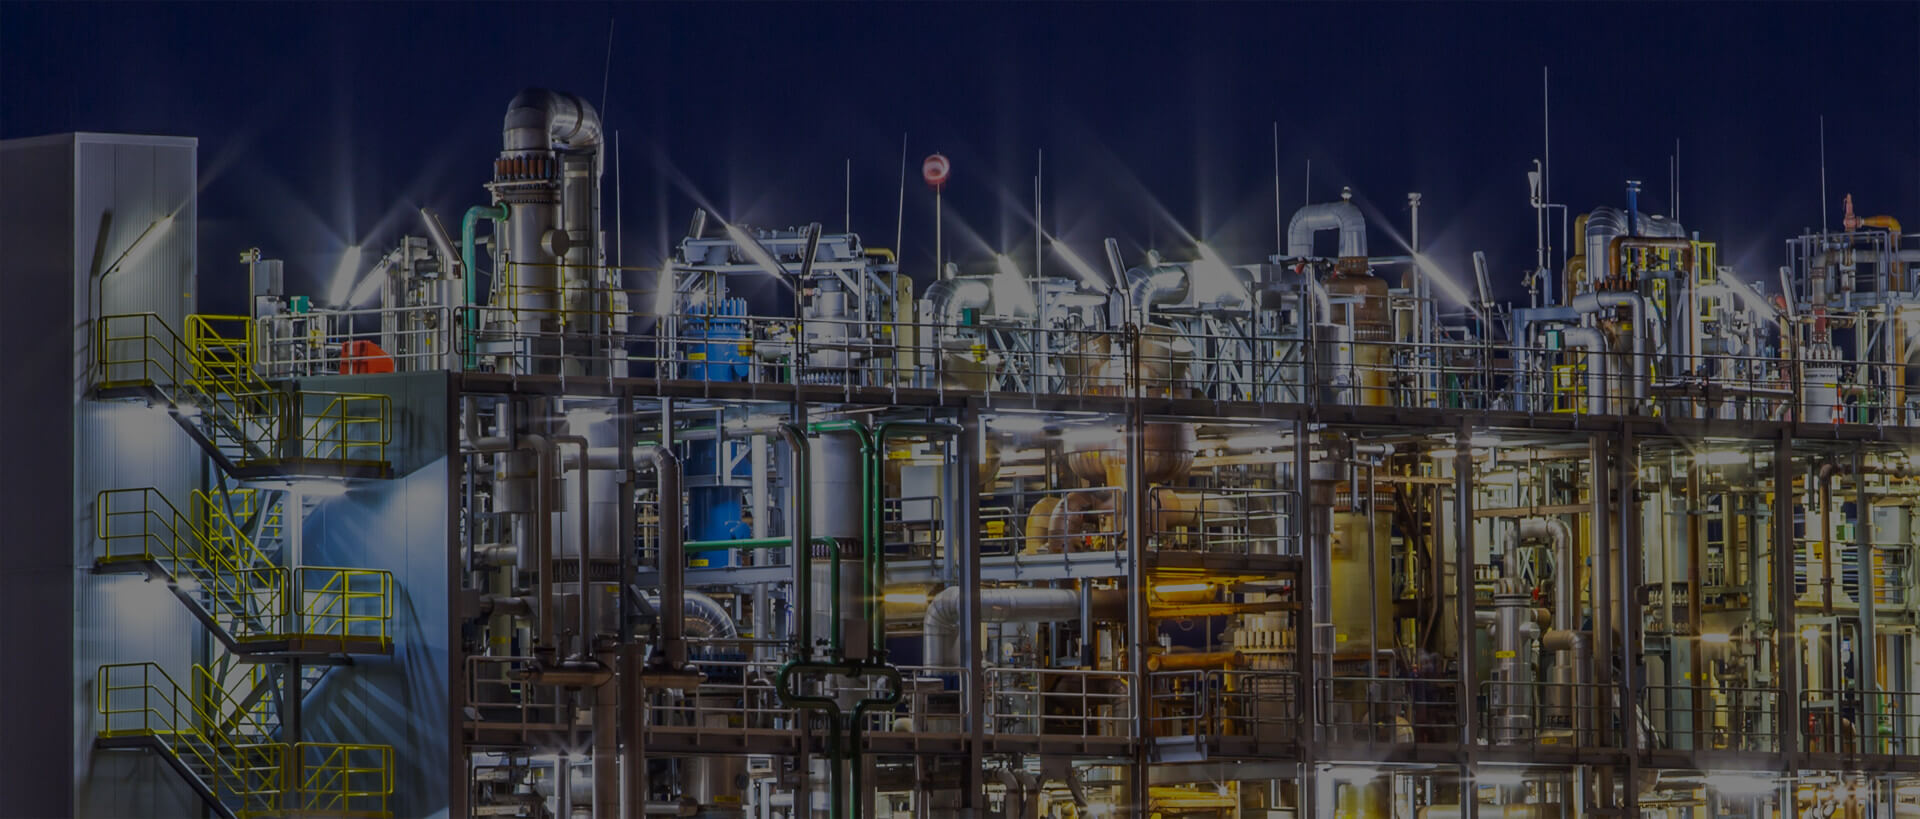 Chemical plant that uses EHS management software to deal with environmental compliance.